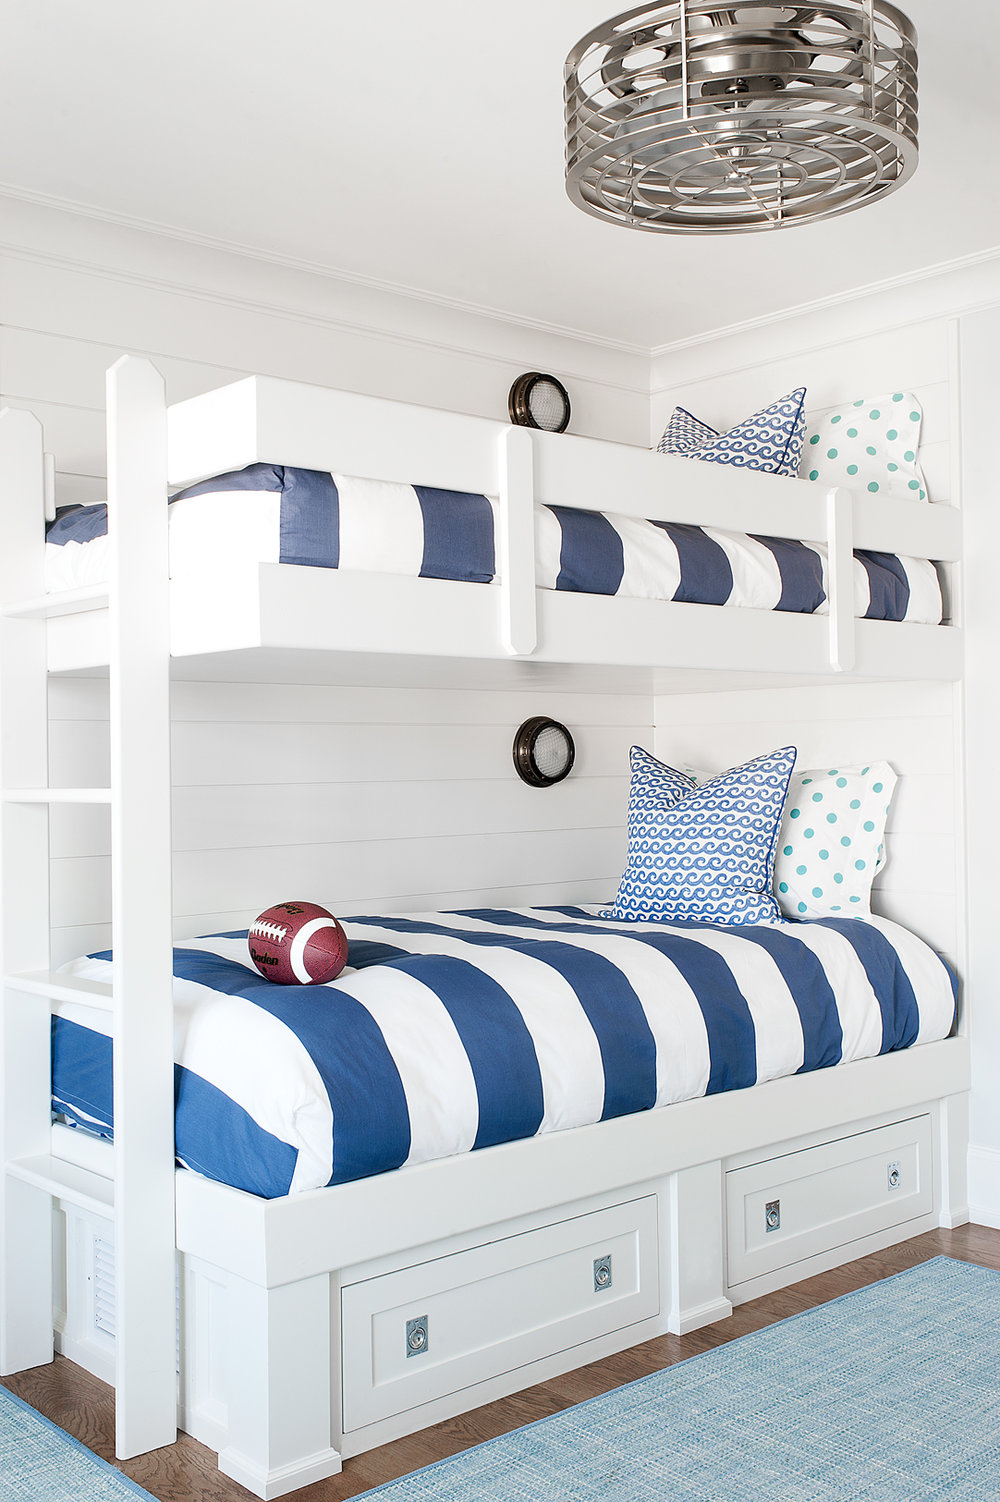 avalon_bunk_room_02.jpg